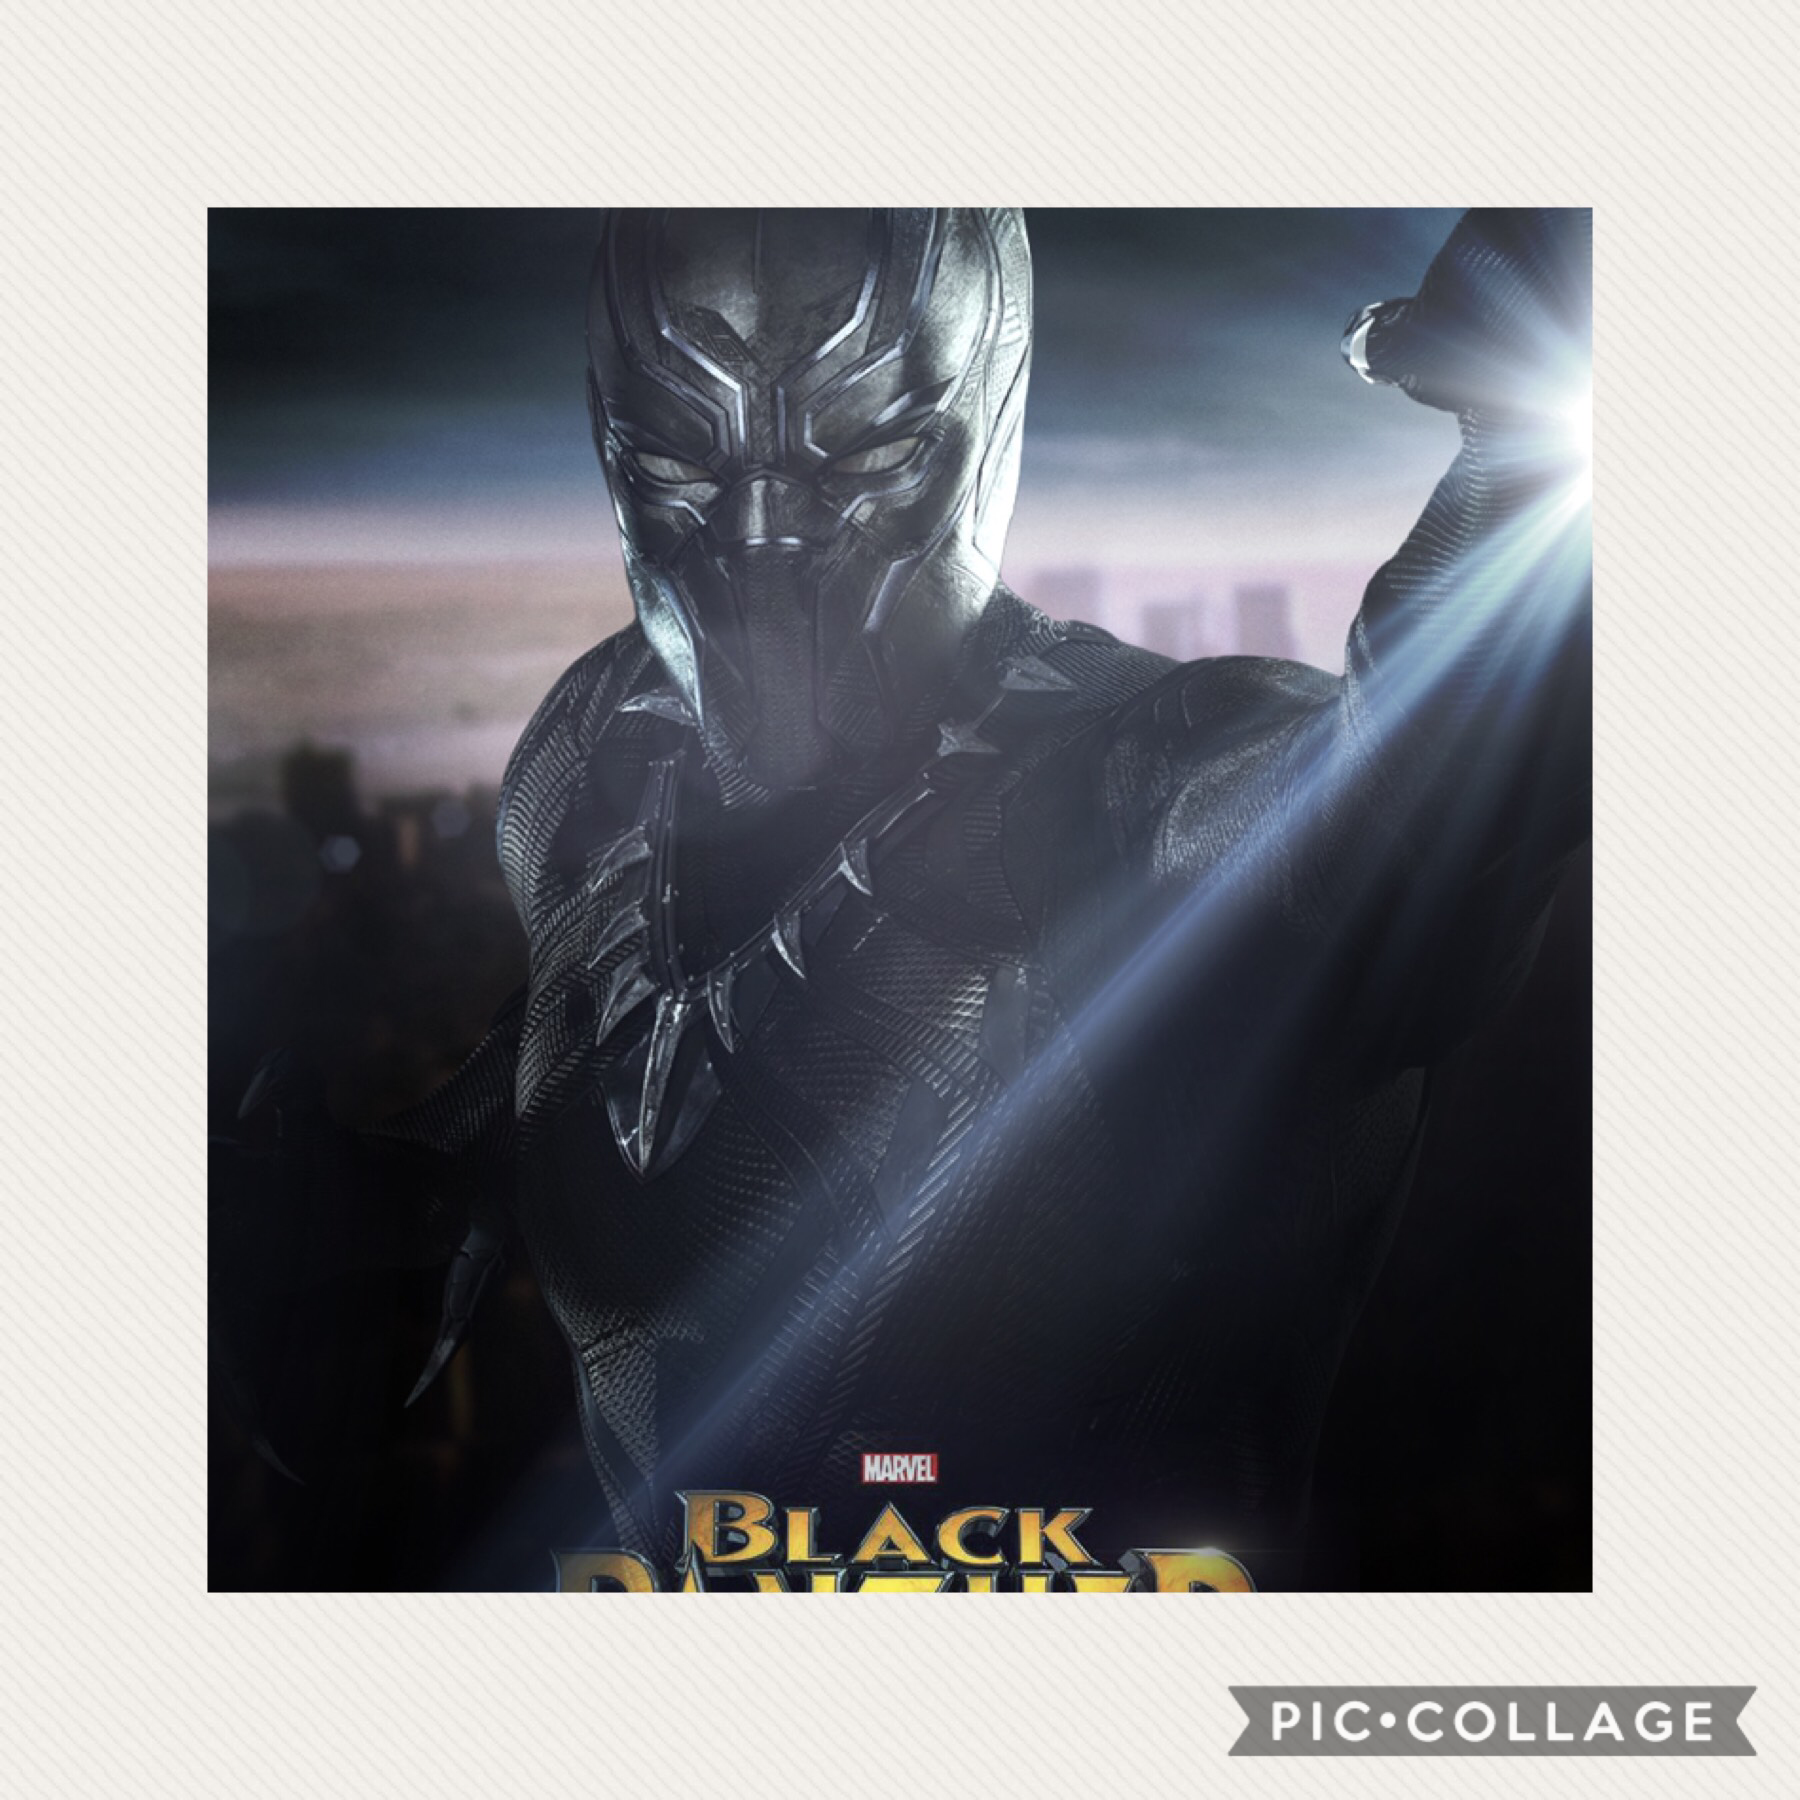 Black panther wins the award for best movie yay